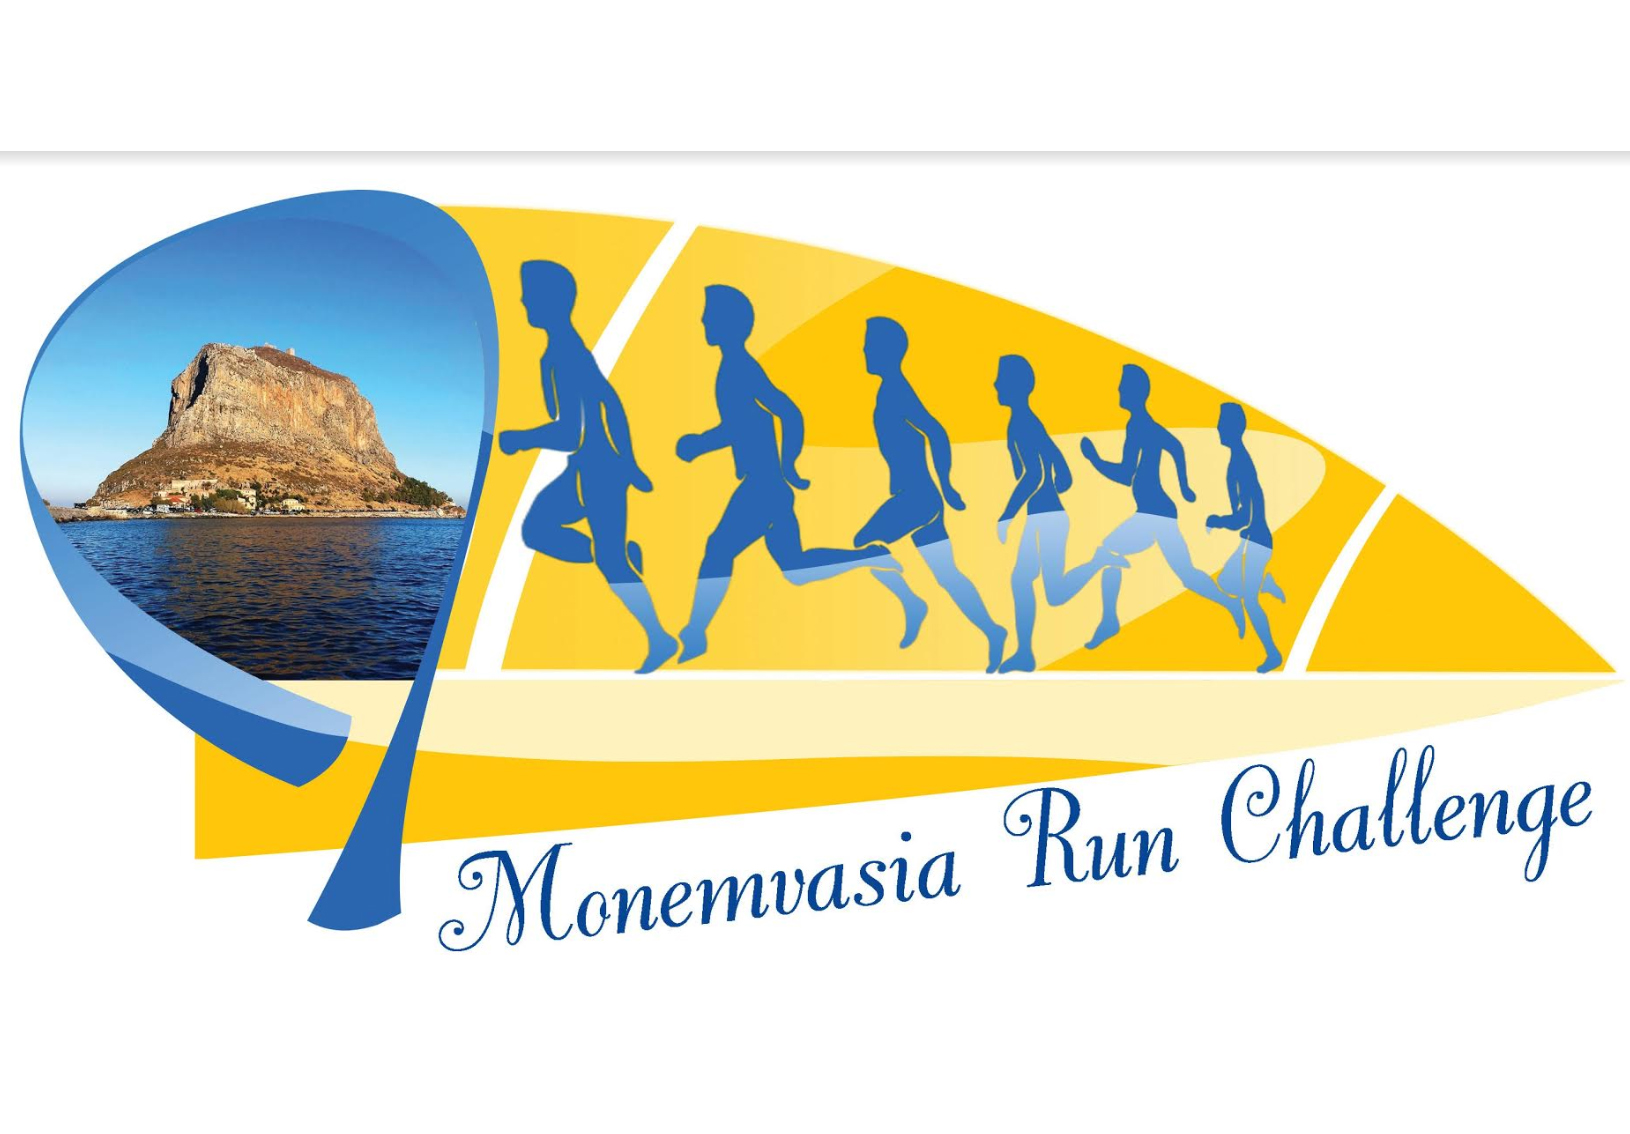 monemvasia run 2018